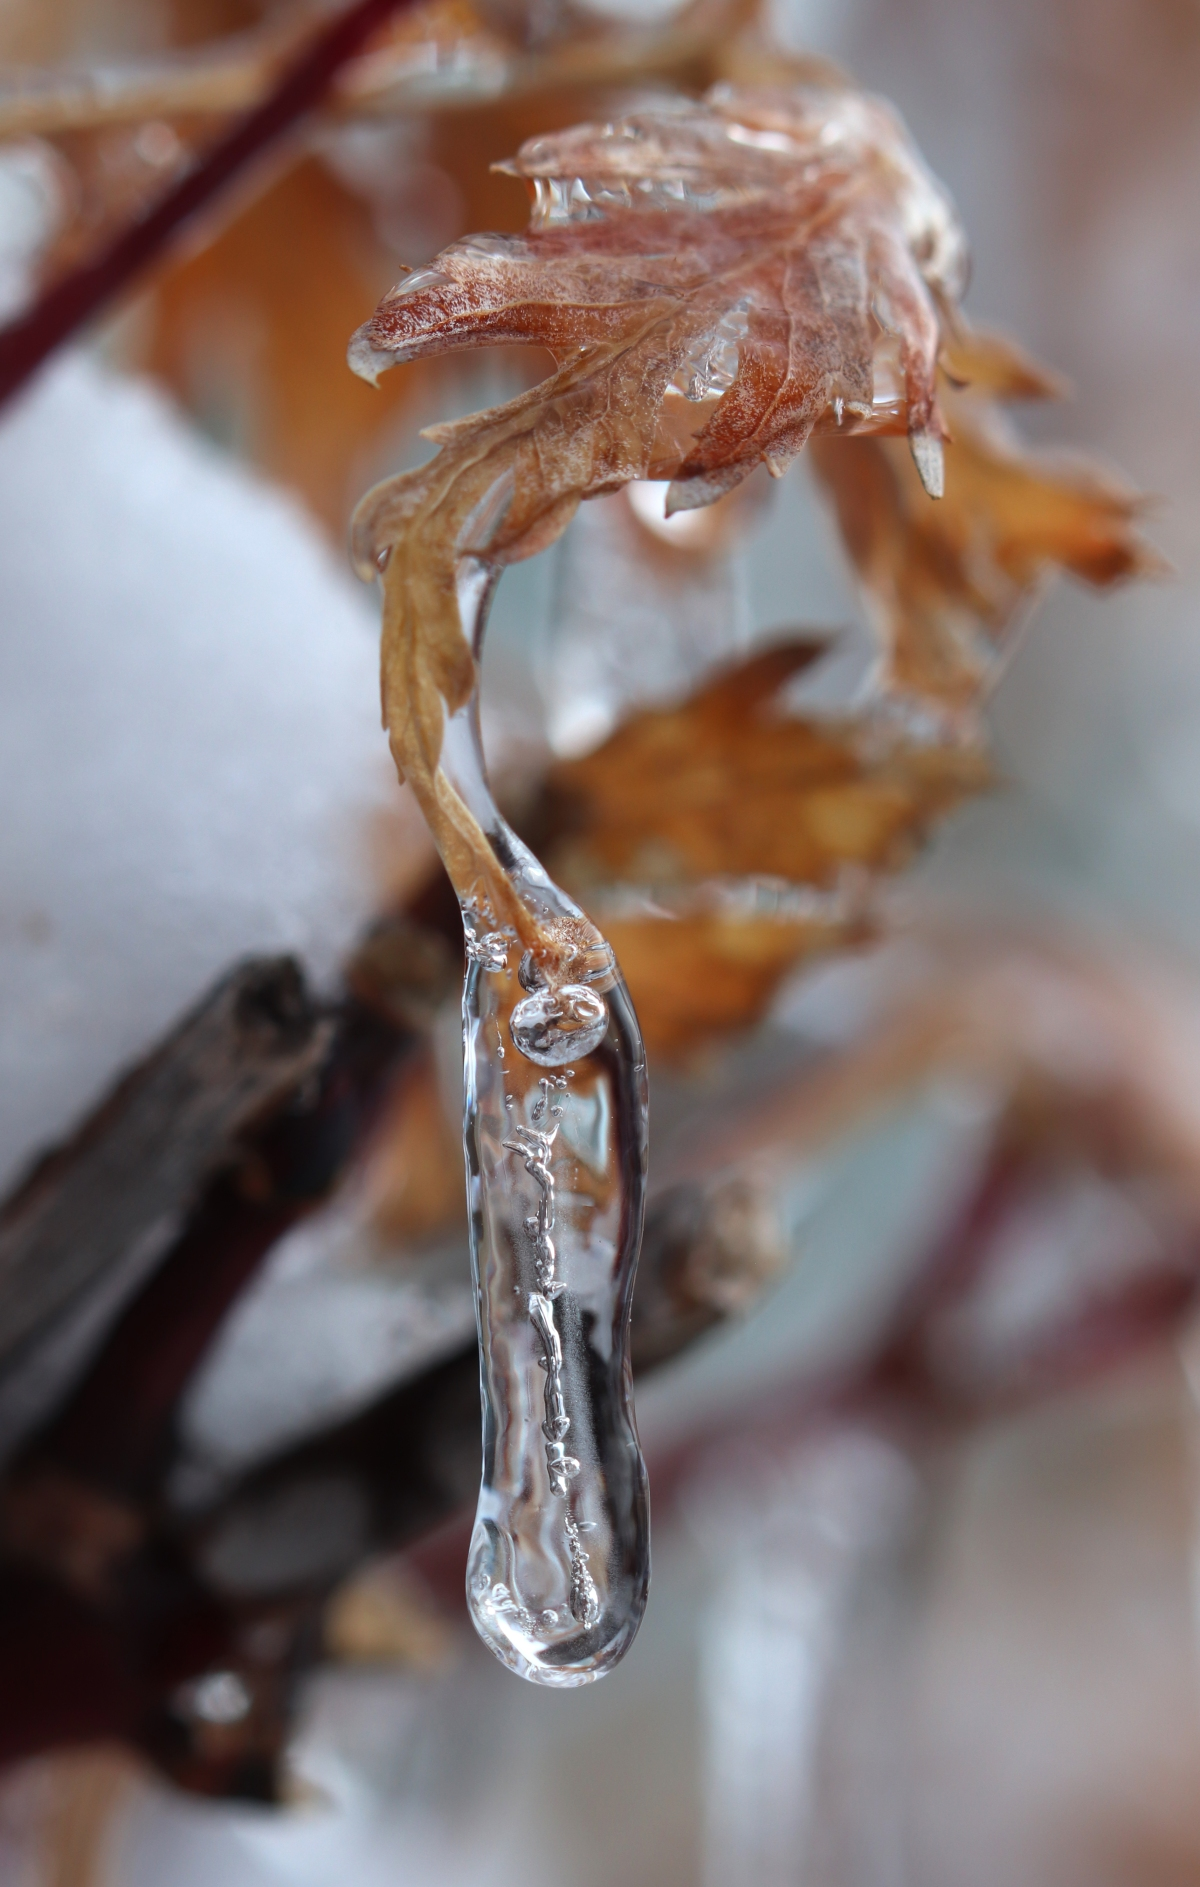 Frozen Drop on Japanese Maple Leaf